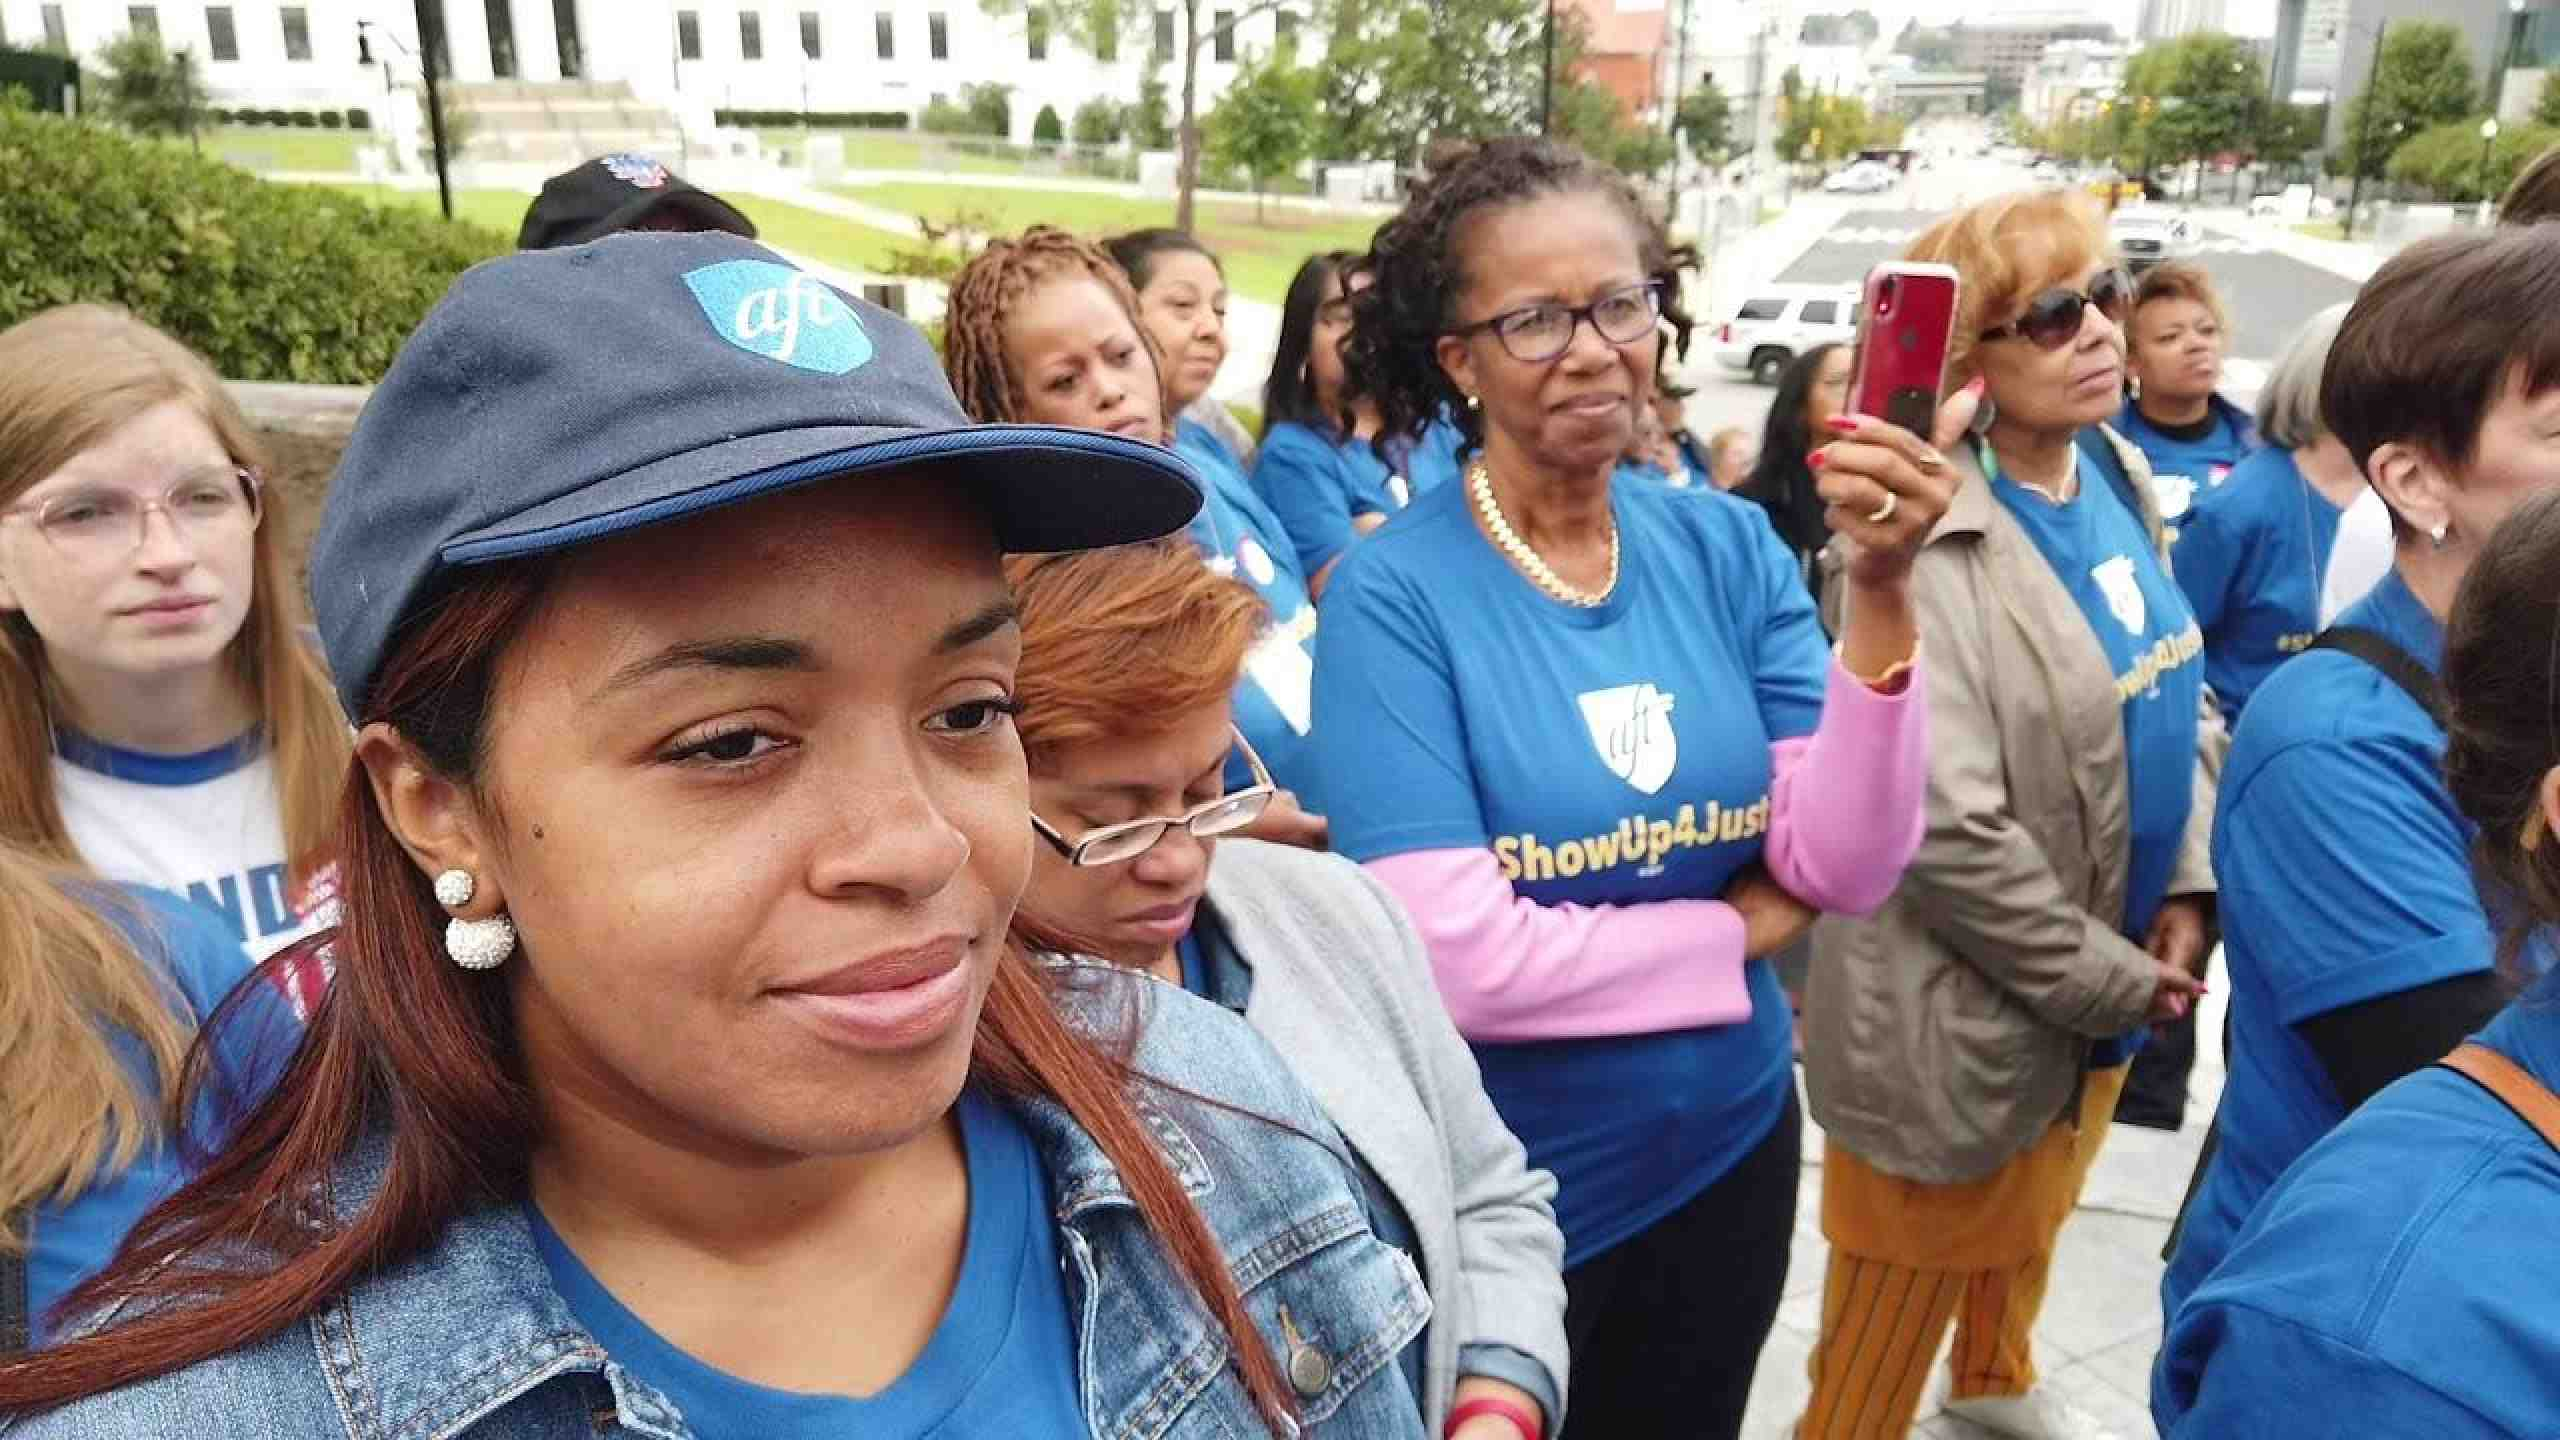 AFT members, leaders and allies rally for justice in Montgomery, Ala.